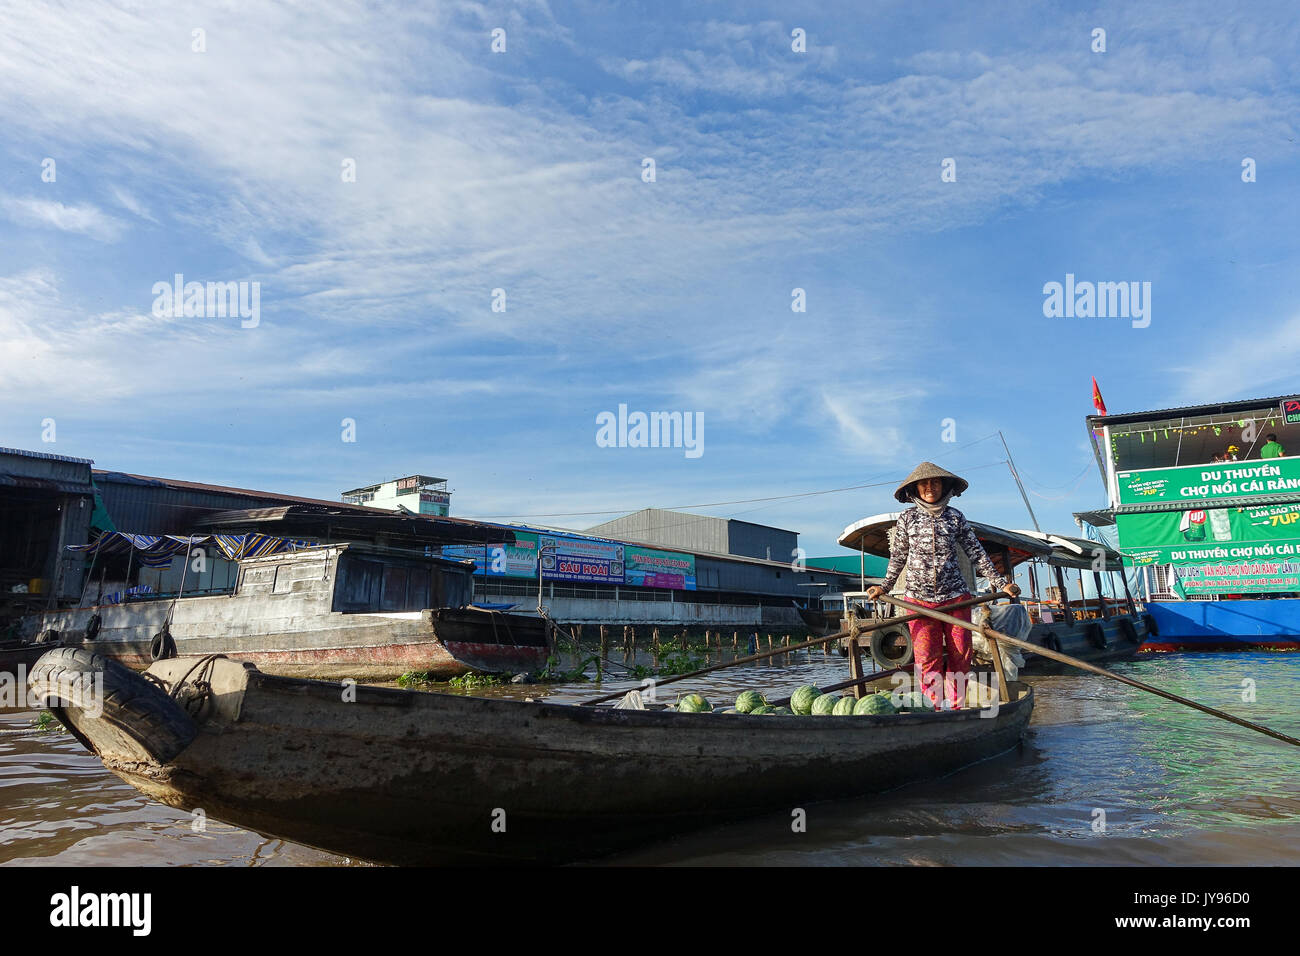 CAN THO, VIET NAM- MAY 24: Crowded atmosphere on Cai Rang floating market, group people with trade activity on farmer market of Mekong Delta, float o - Stock Image